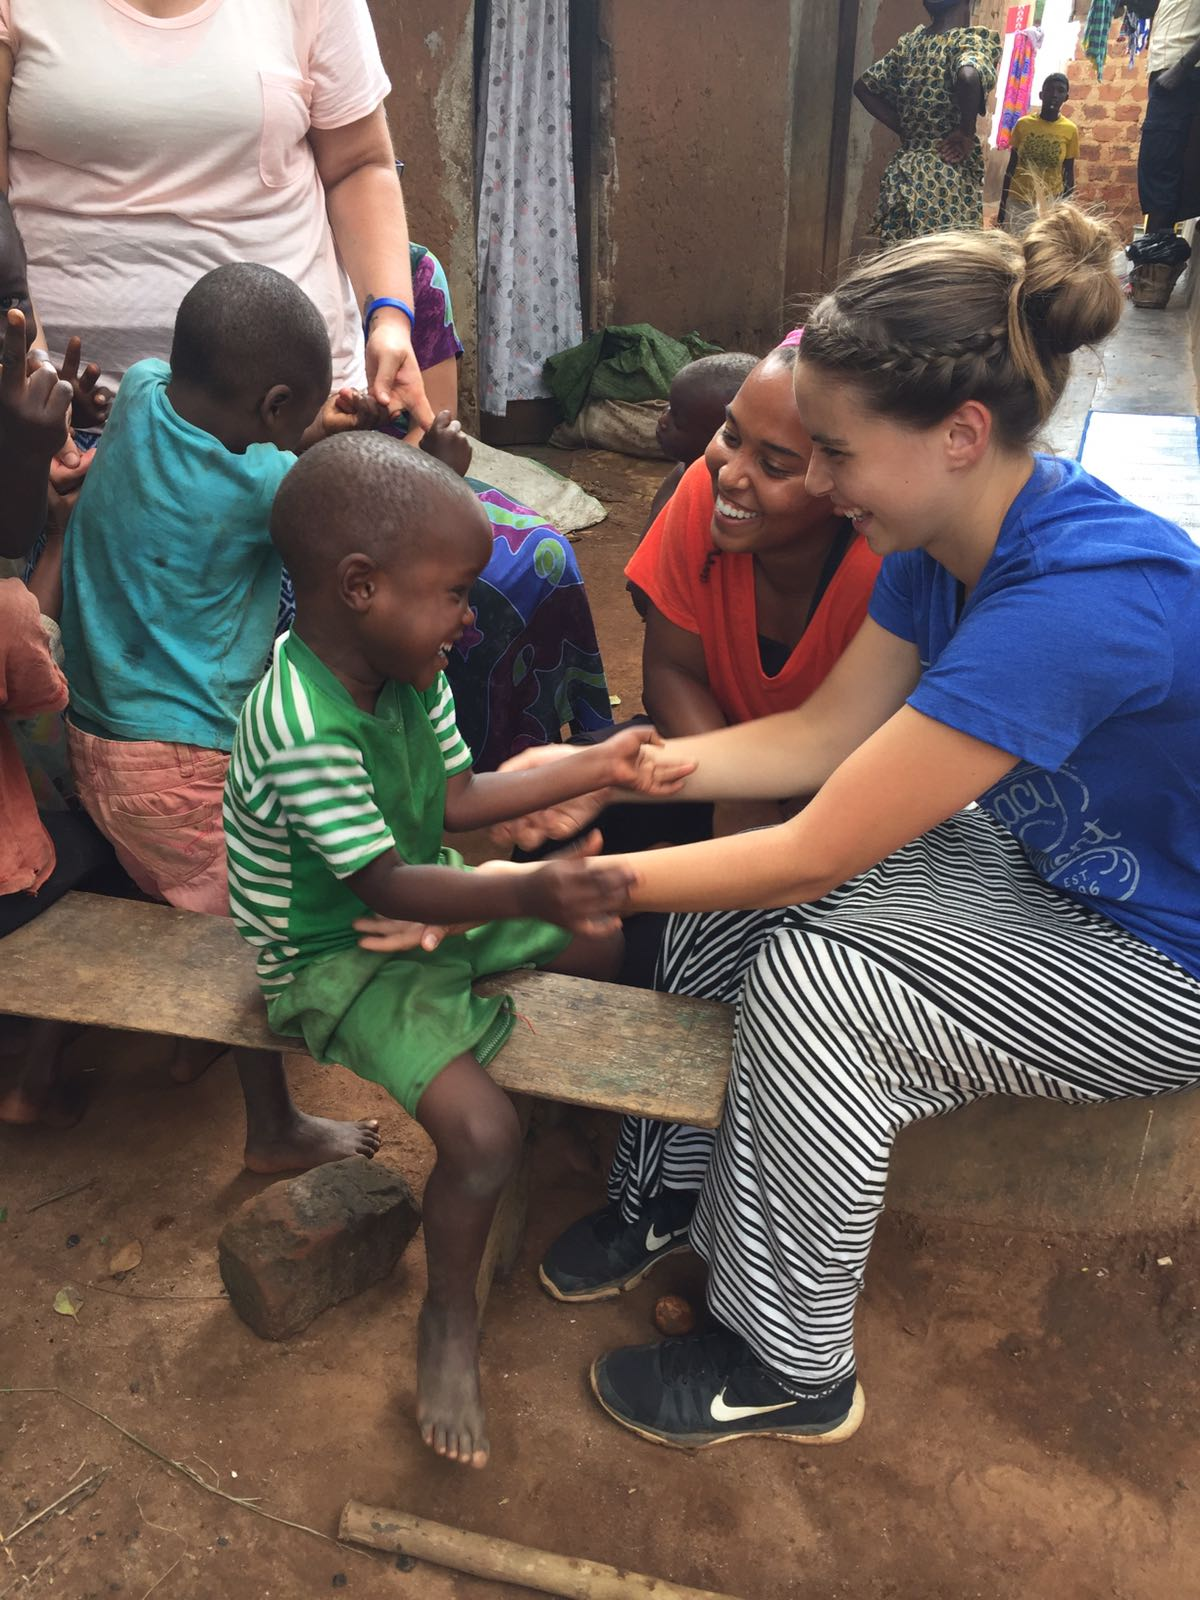 Our interns were present long enough that they weren't just smitten by cute kids, they continued, day after day, investing into children in sustainable ways to make their lives better.